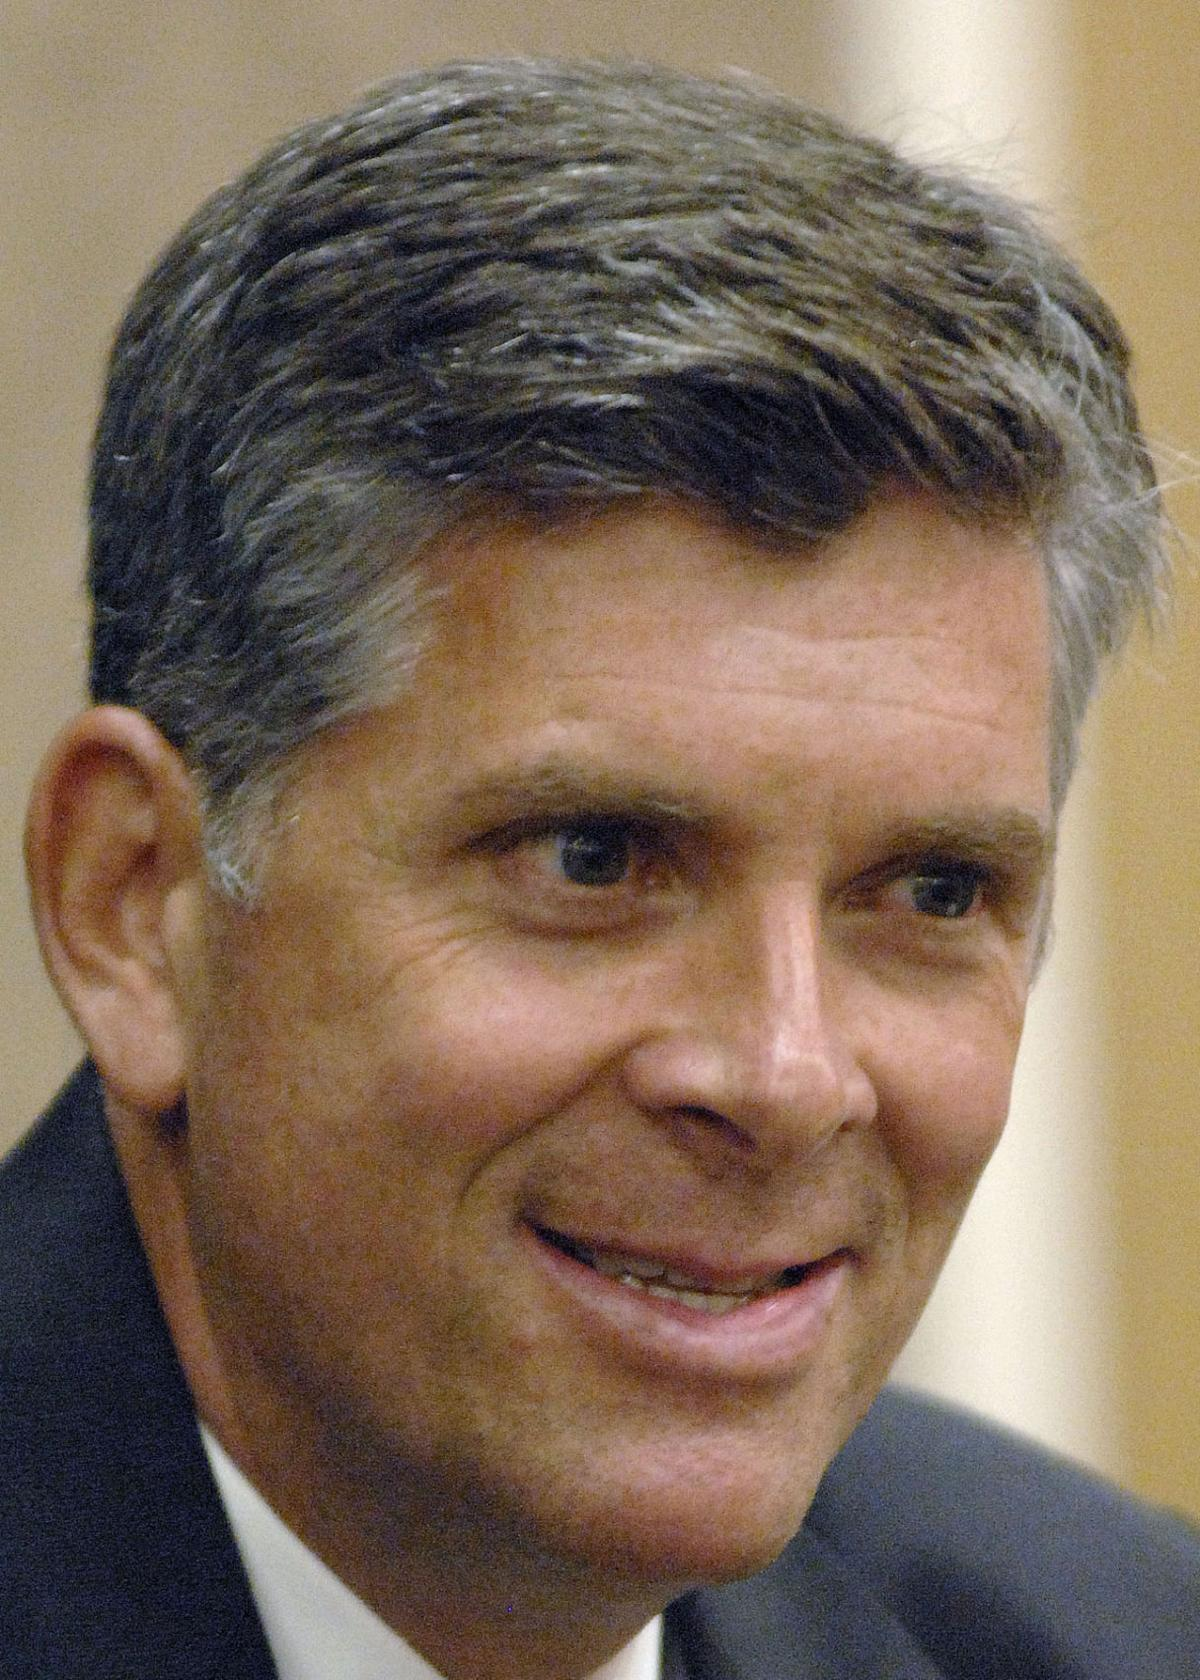 rodriguez lahood tout bipartisan house goals in debate darin lahood